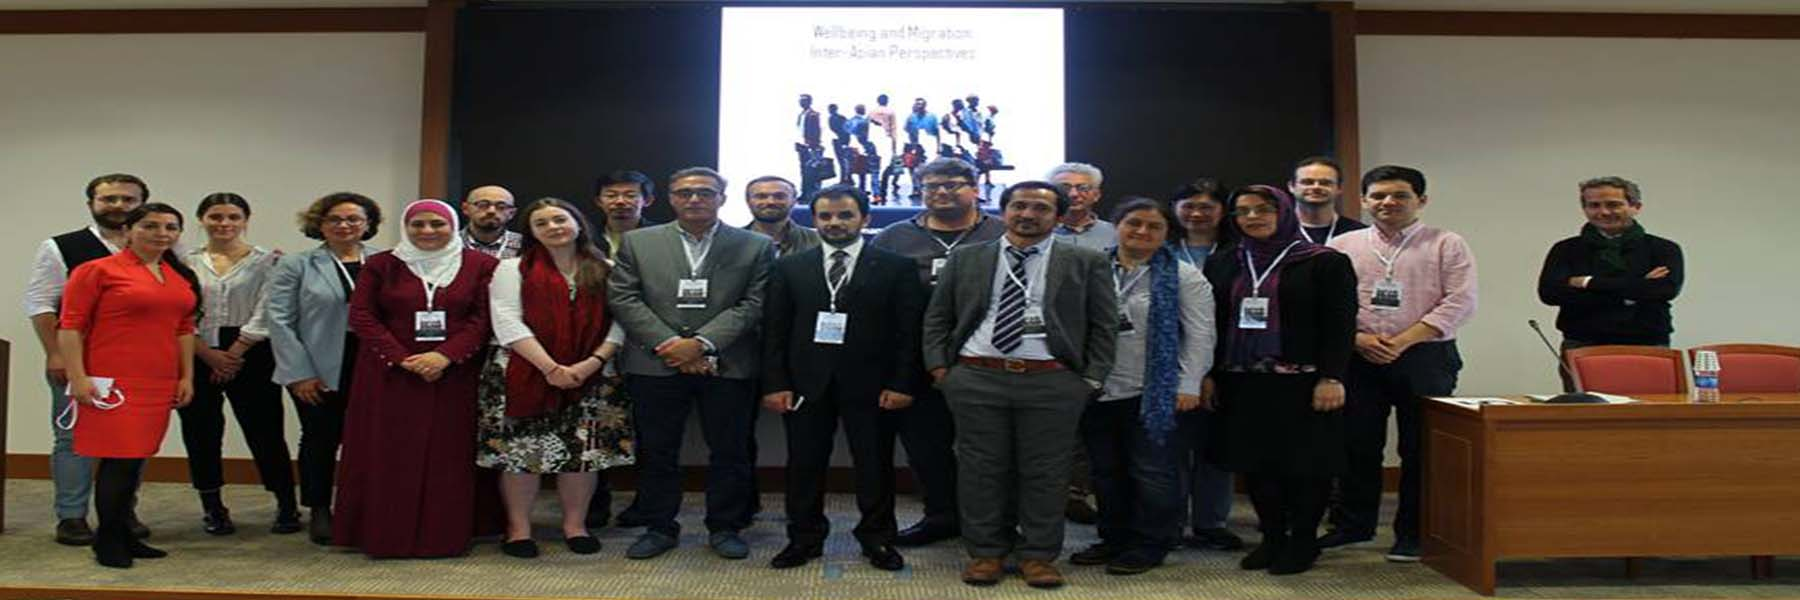 """Launching Conference on """"Wellbeing and Migration: Inter-Asian Perspectives"""" in Istanbul"""